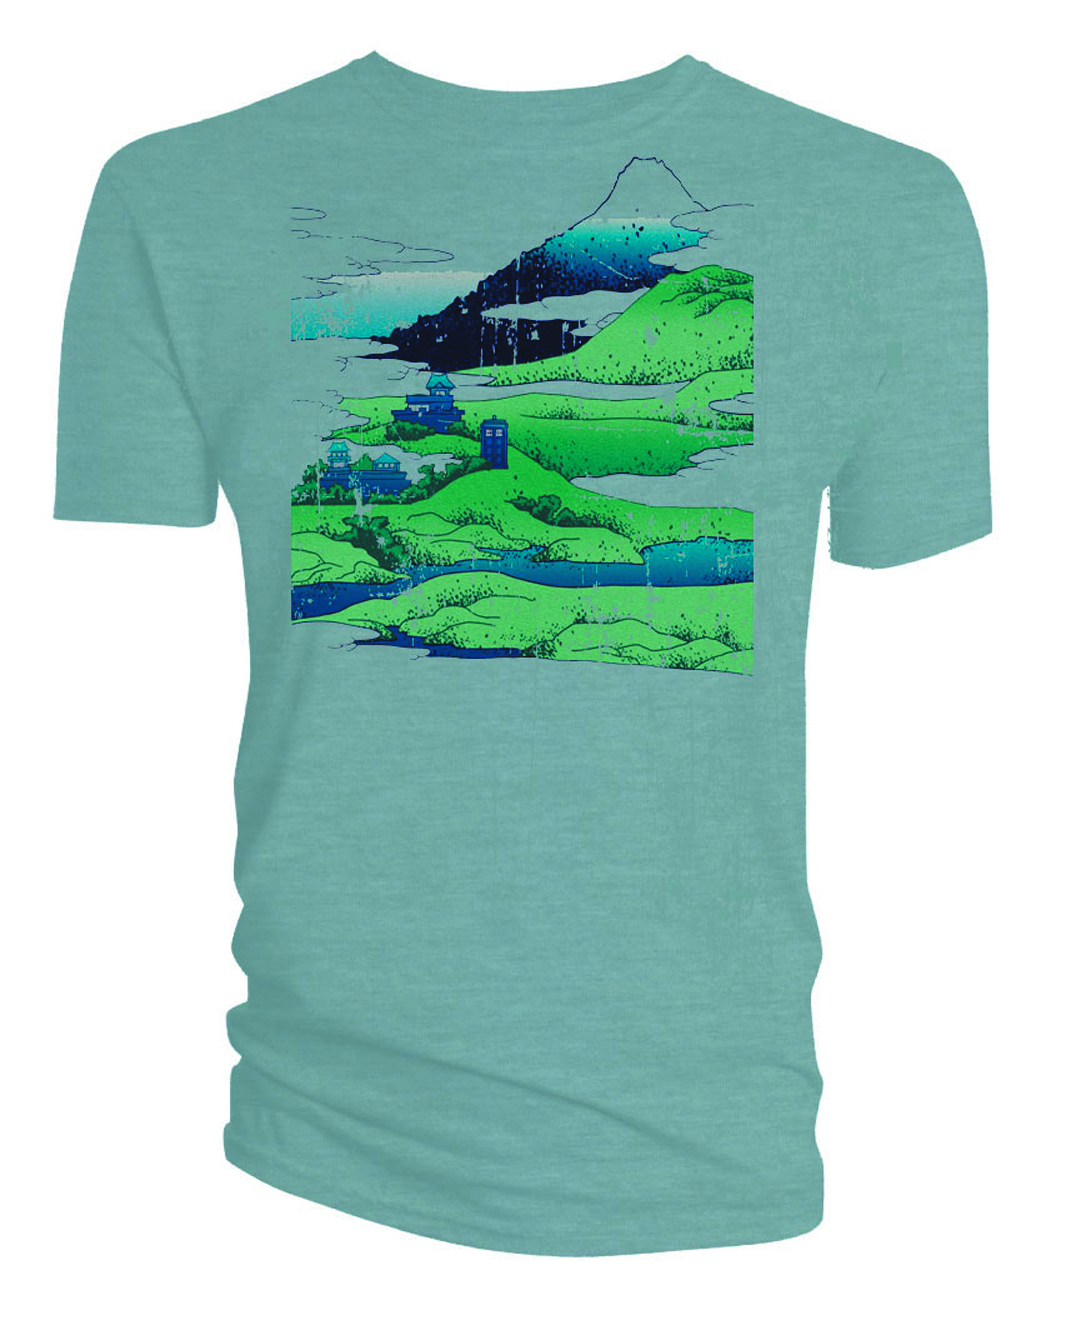 DW TARDIS MOUNTAINS PX BLUE T/S MED